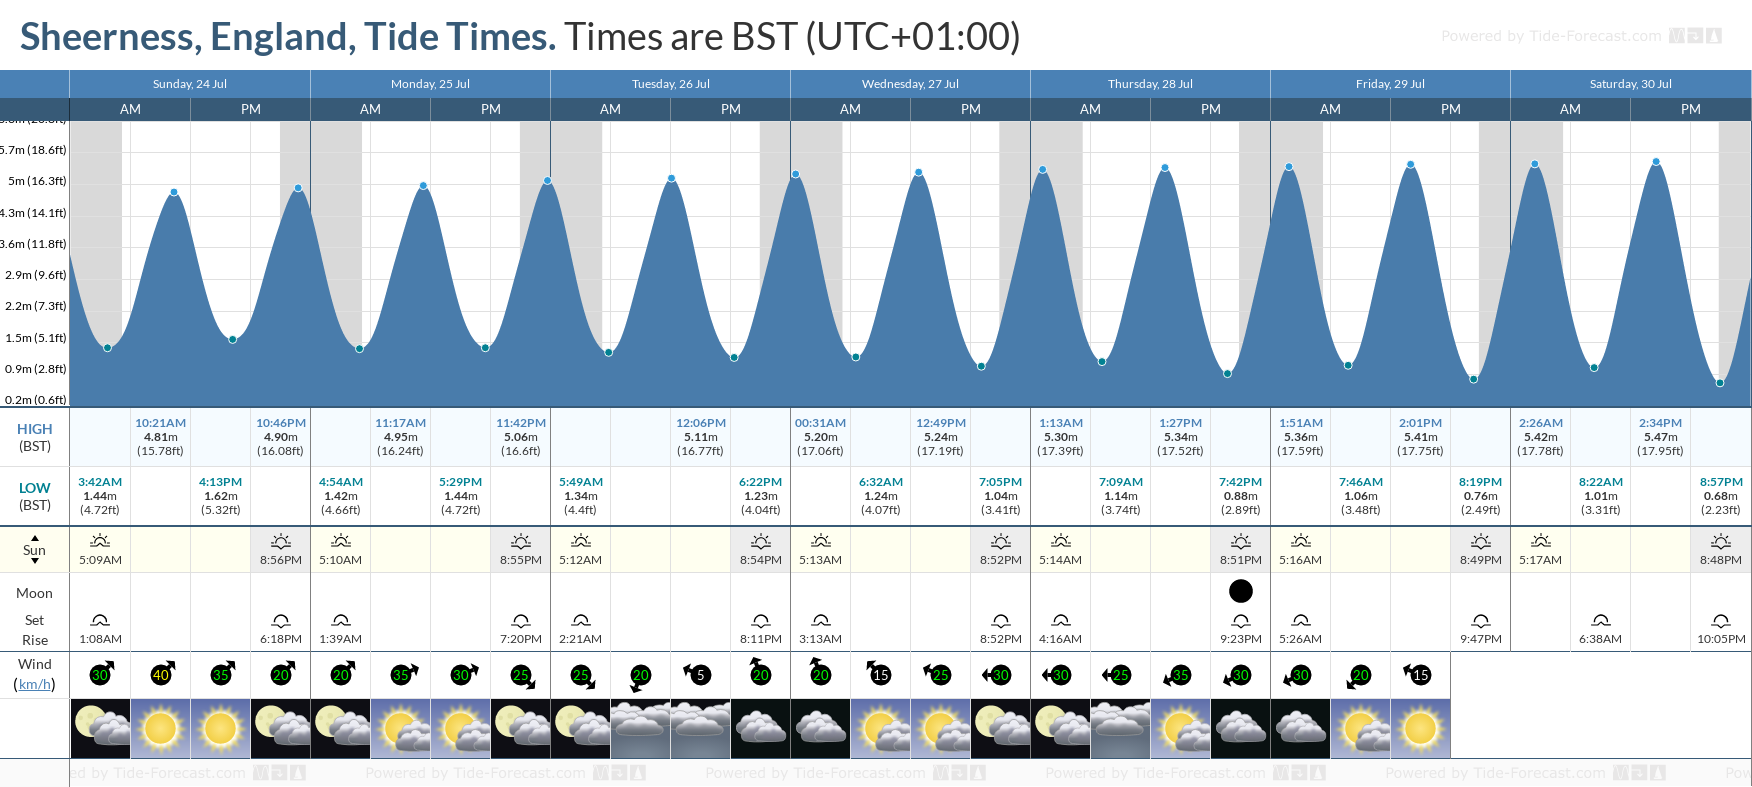 Sheerness, England Tide Chart including high and low tide tide times for the next 7 days